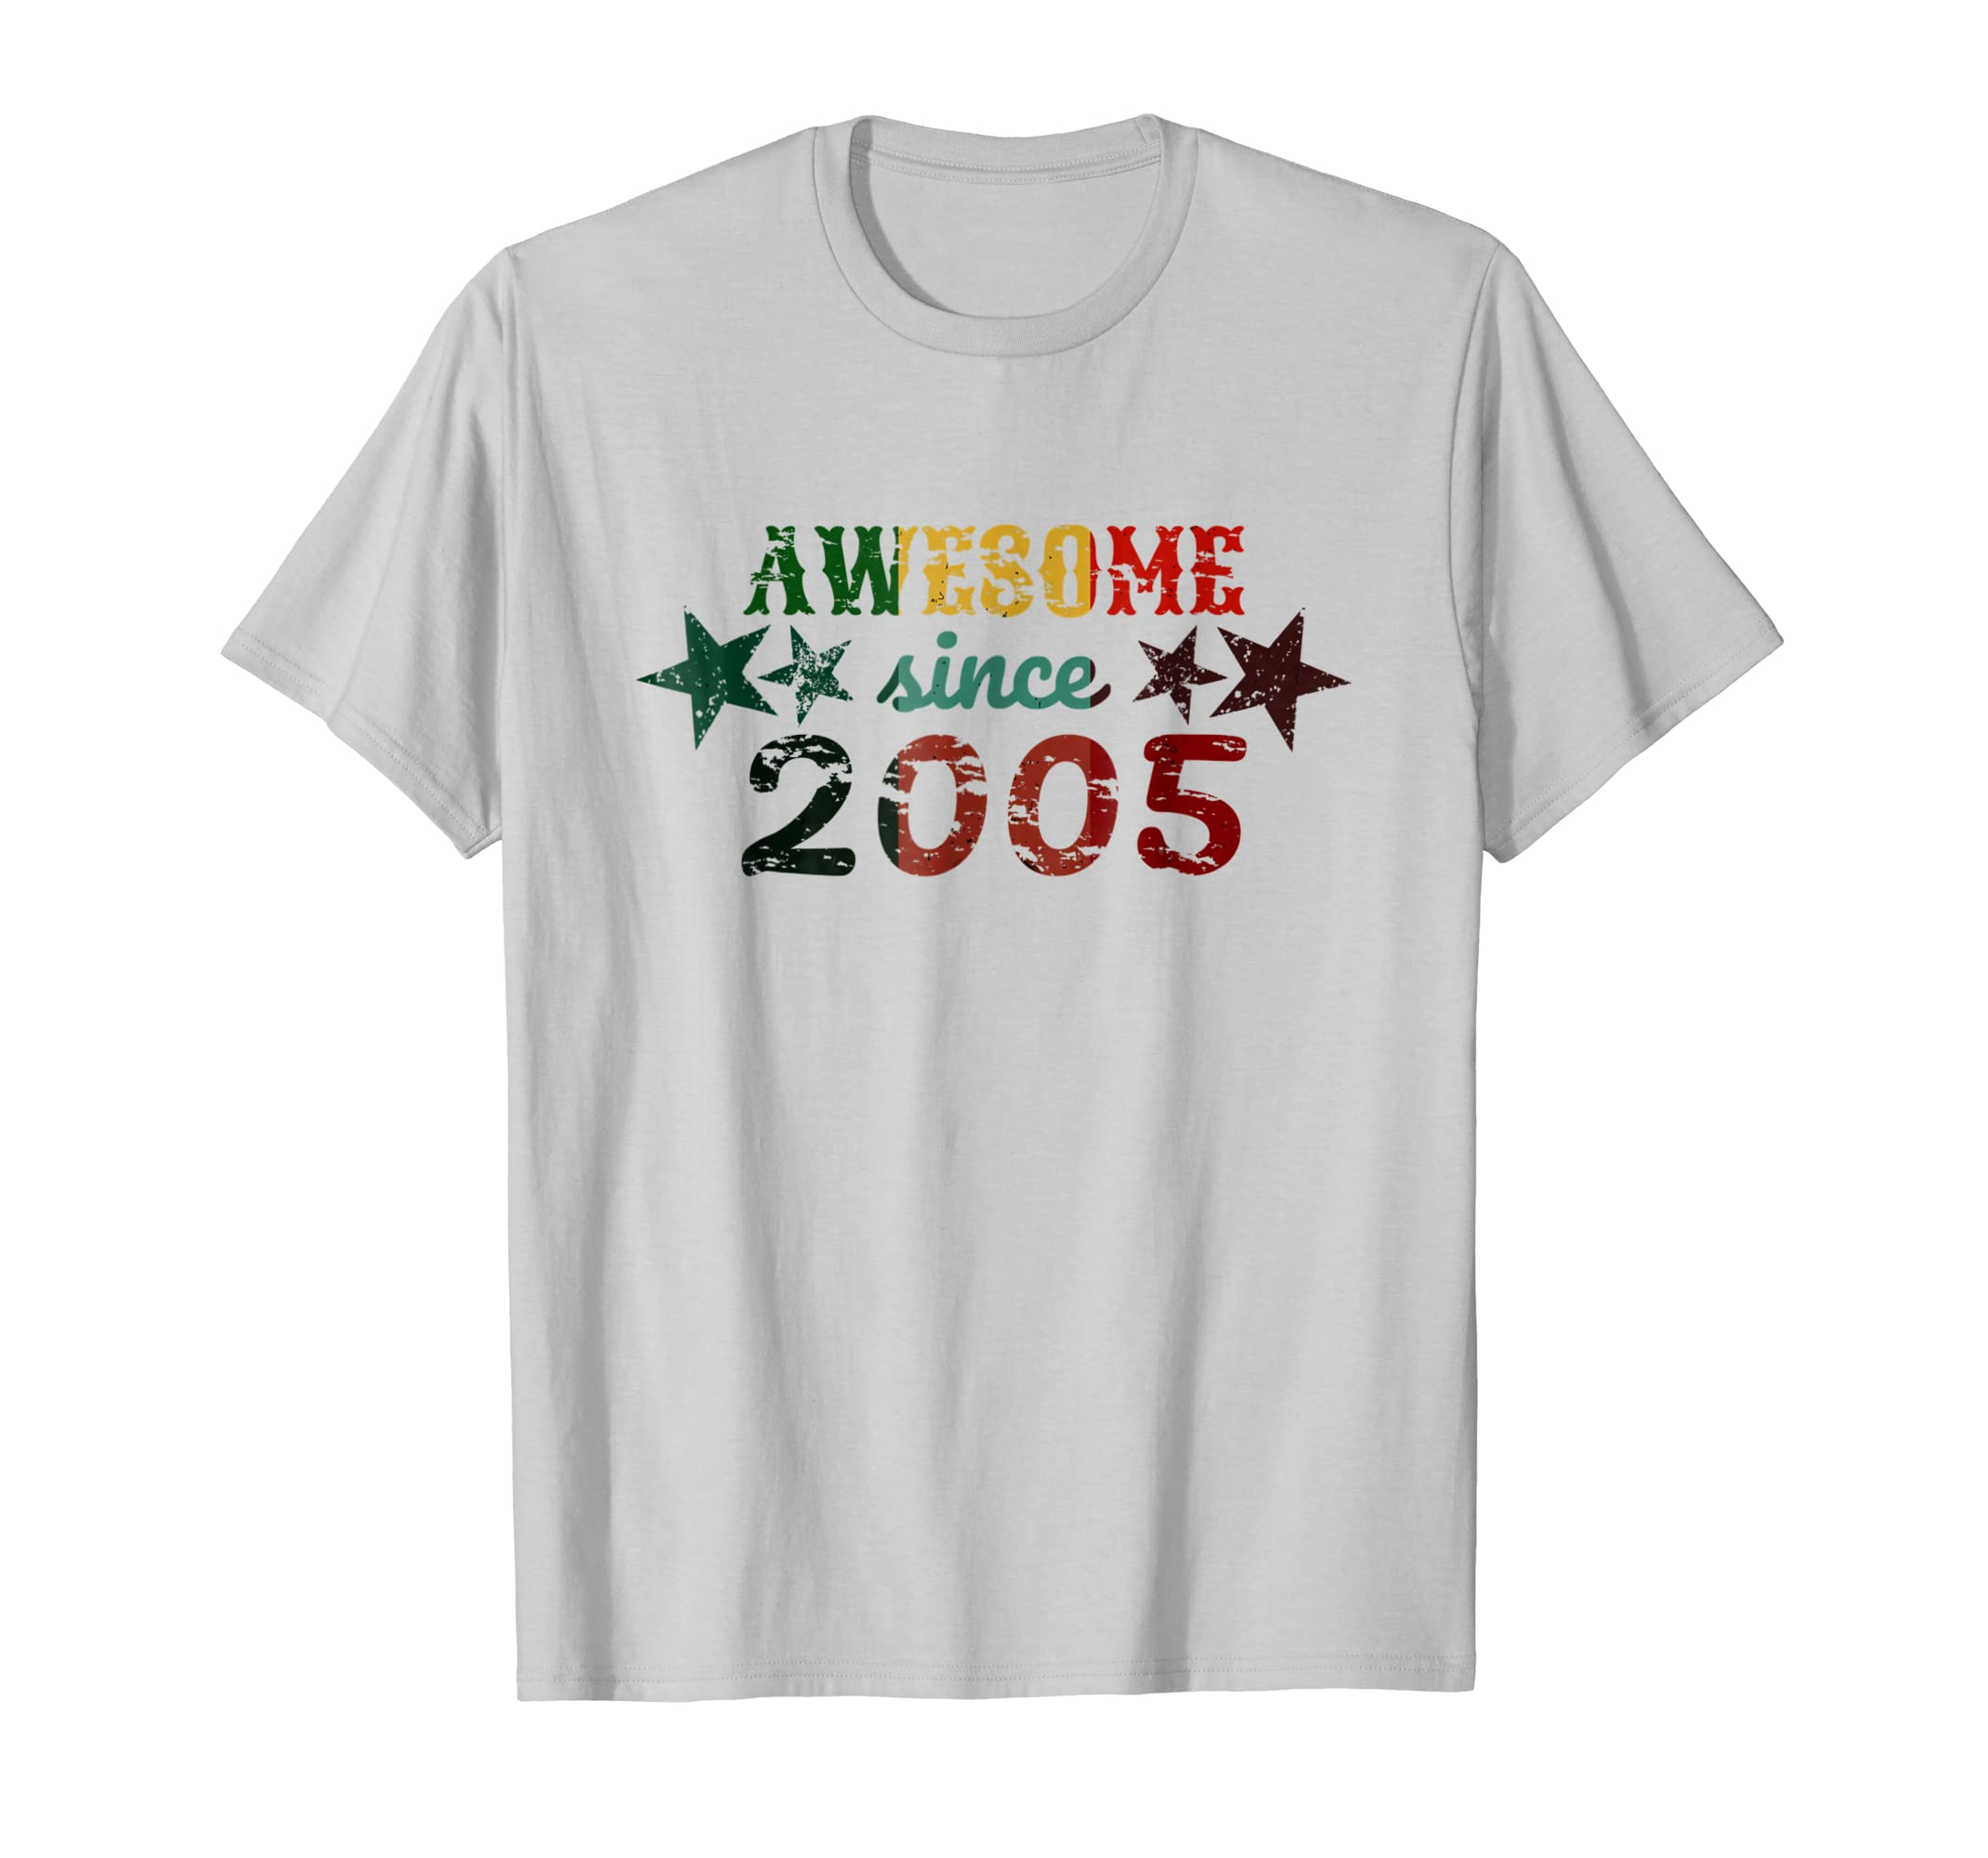 Amazon Awesome Since 2005 13 Year Old Birthday Present Shirt Clothing